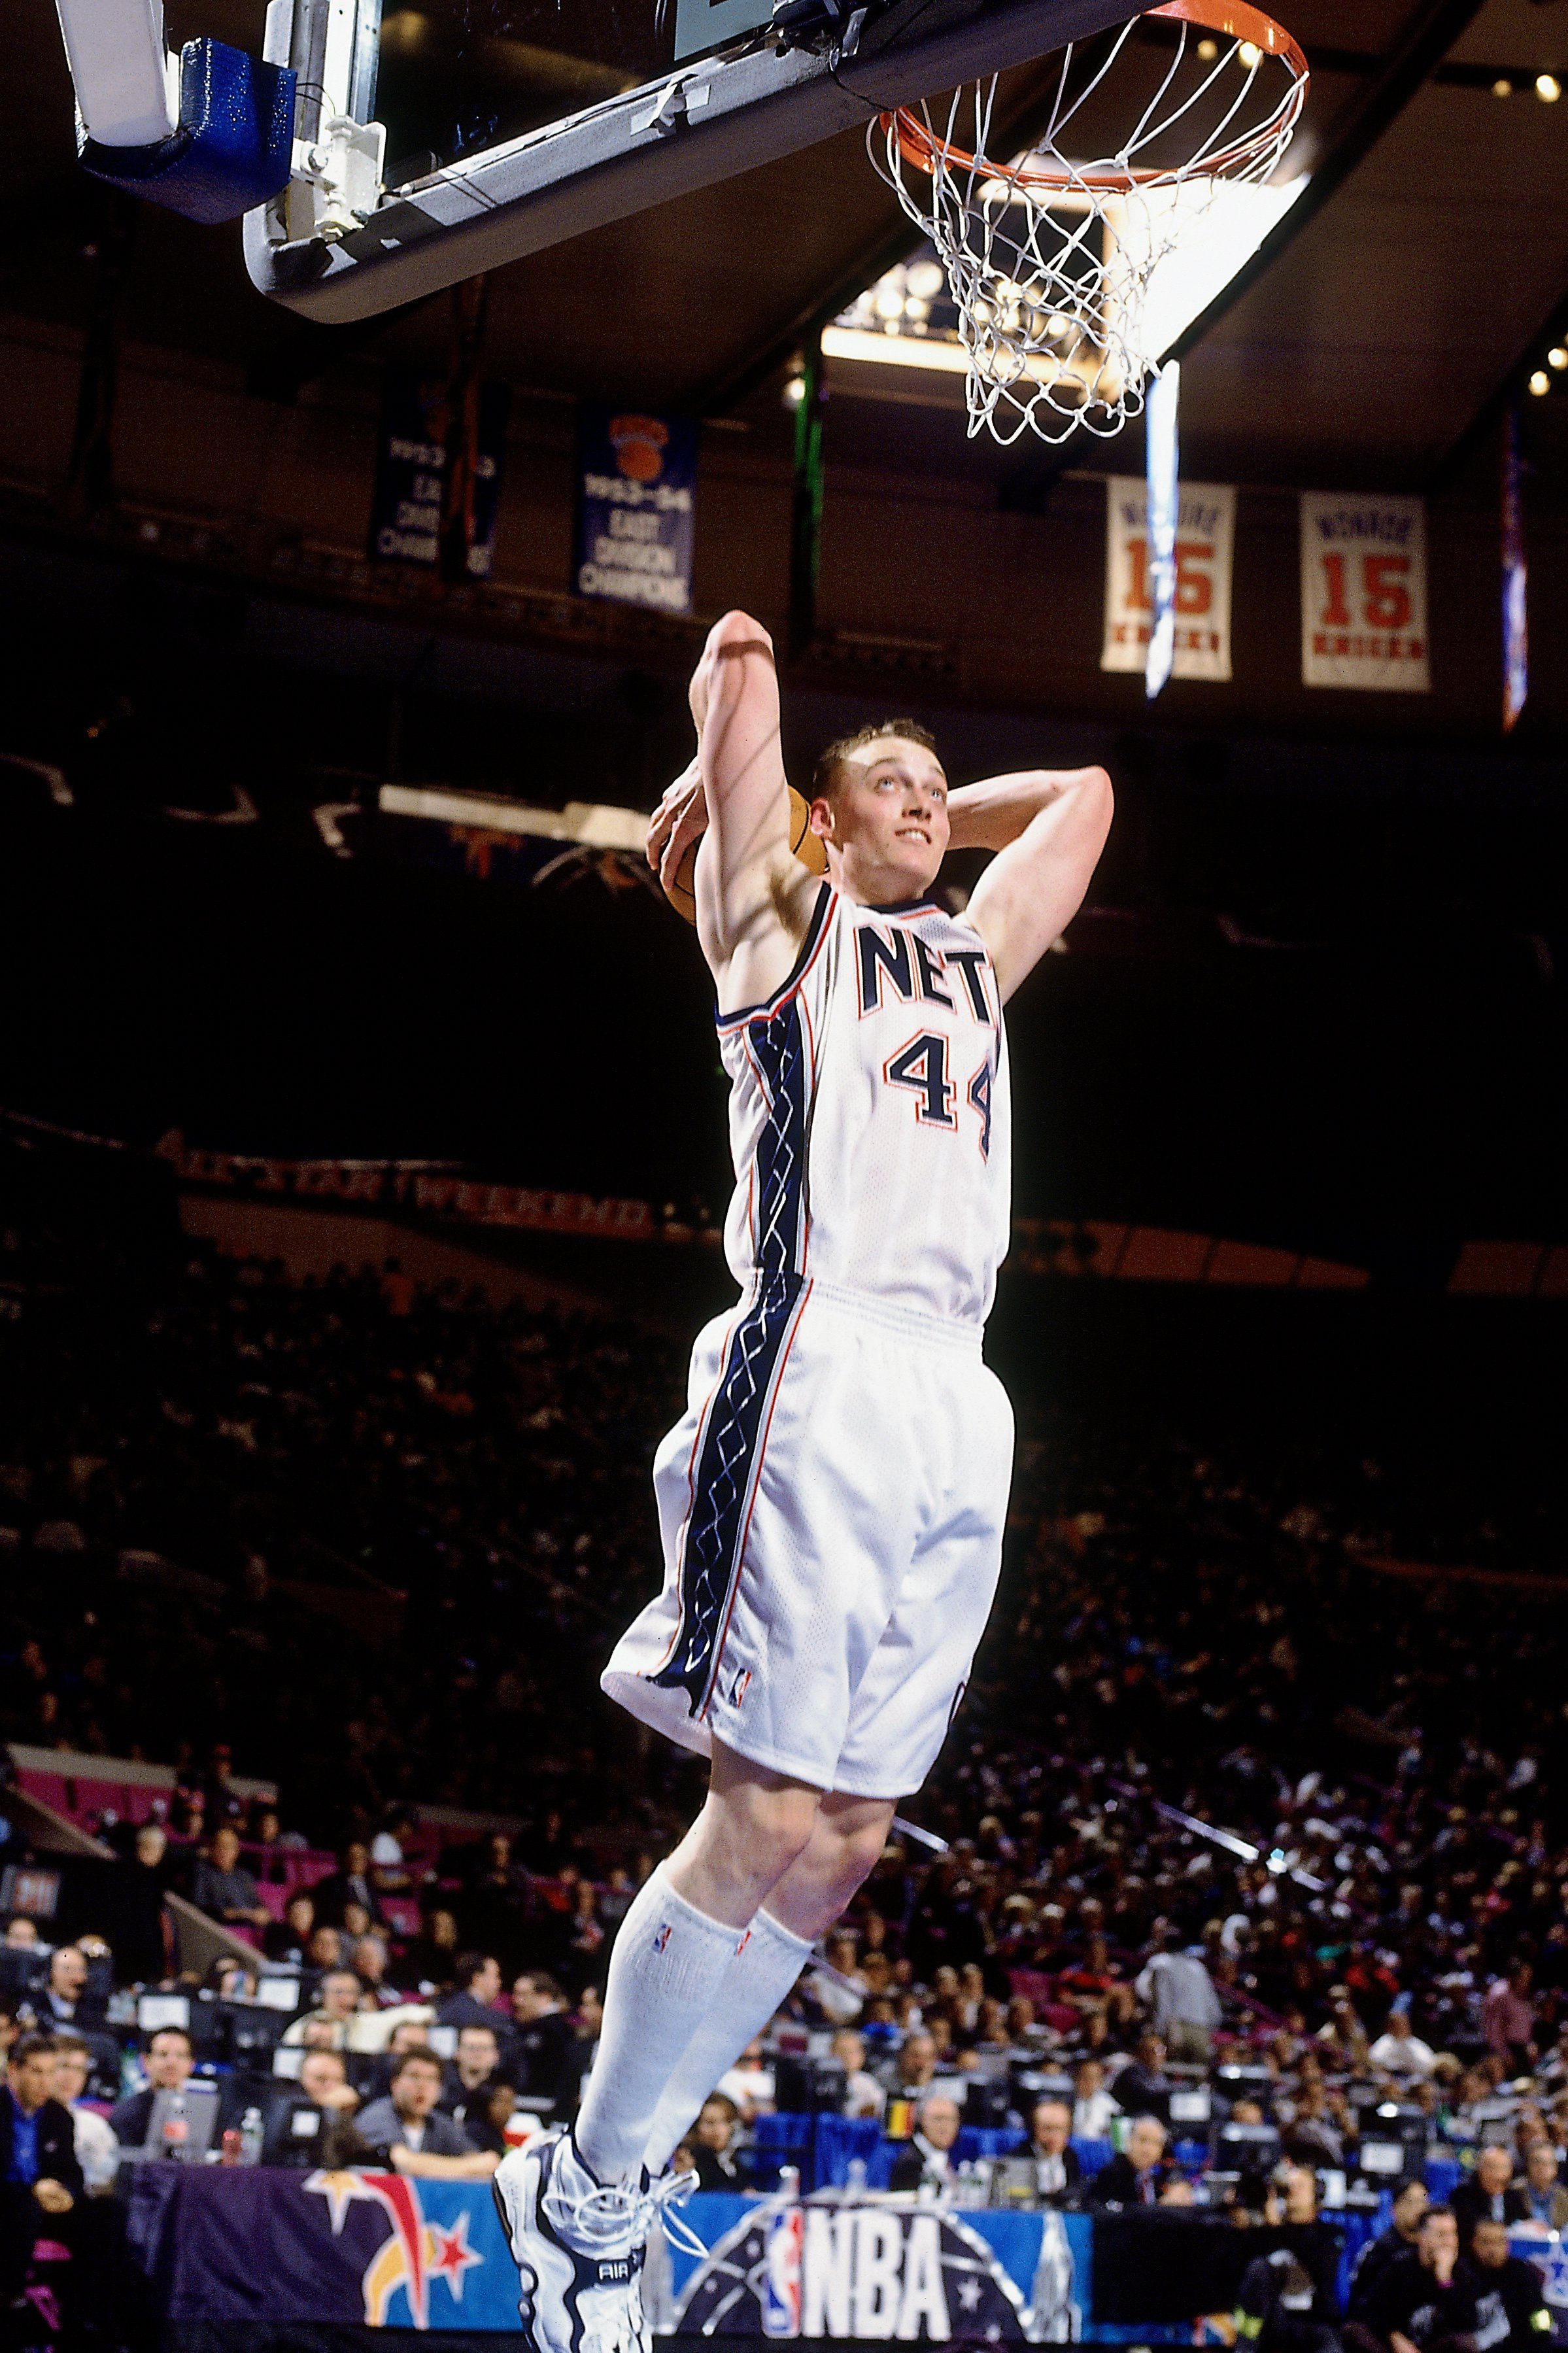 Keith Van Horn New Jersey Nets the man knew how to rock the high